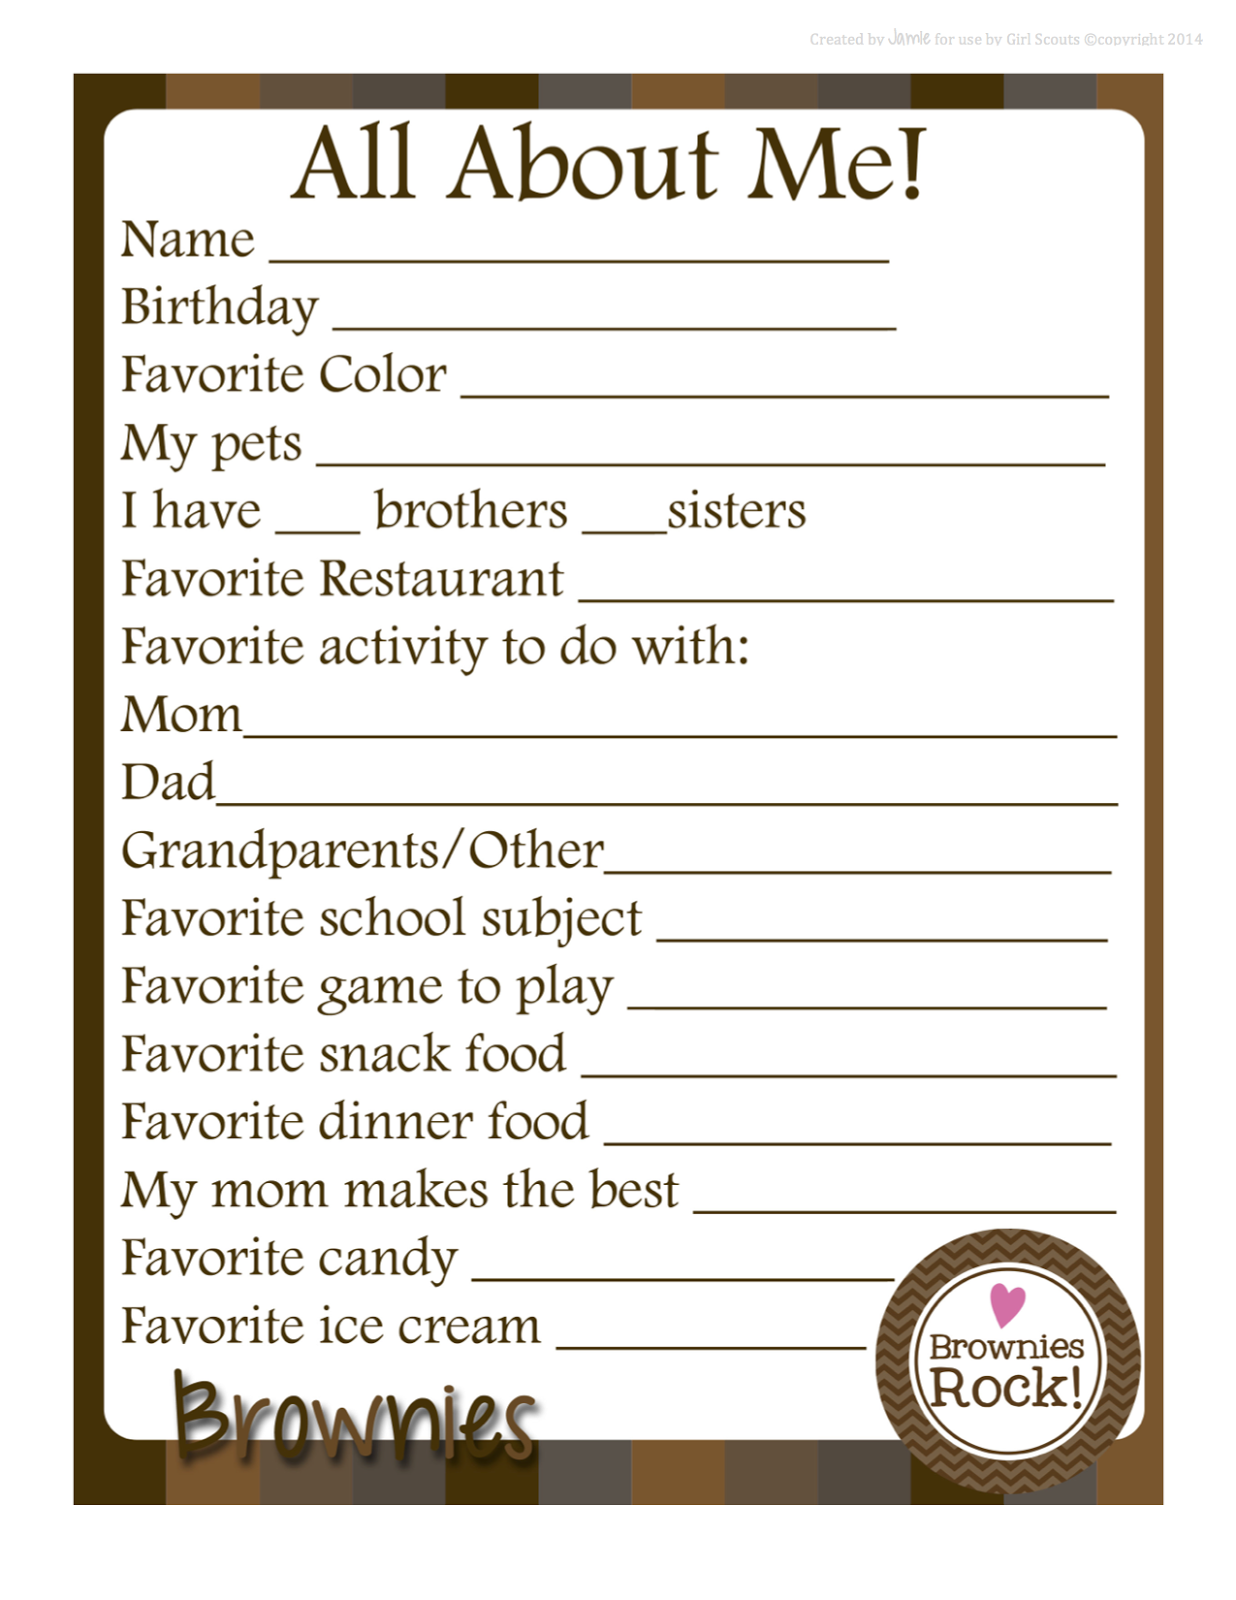 Girl Scouts About Me Free Printable